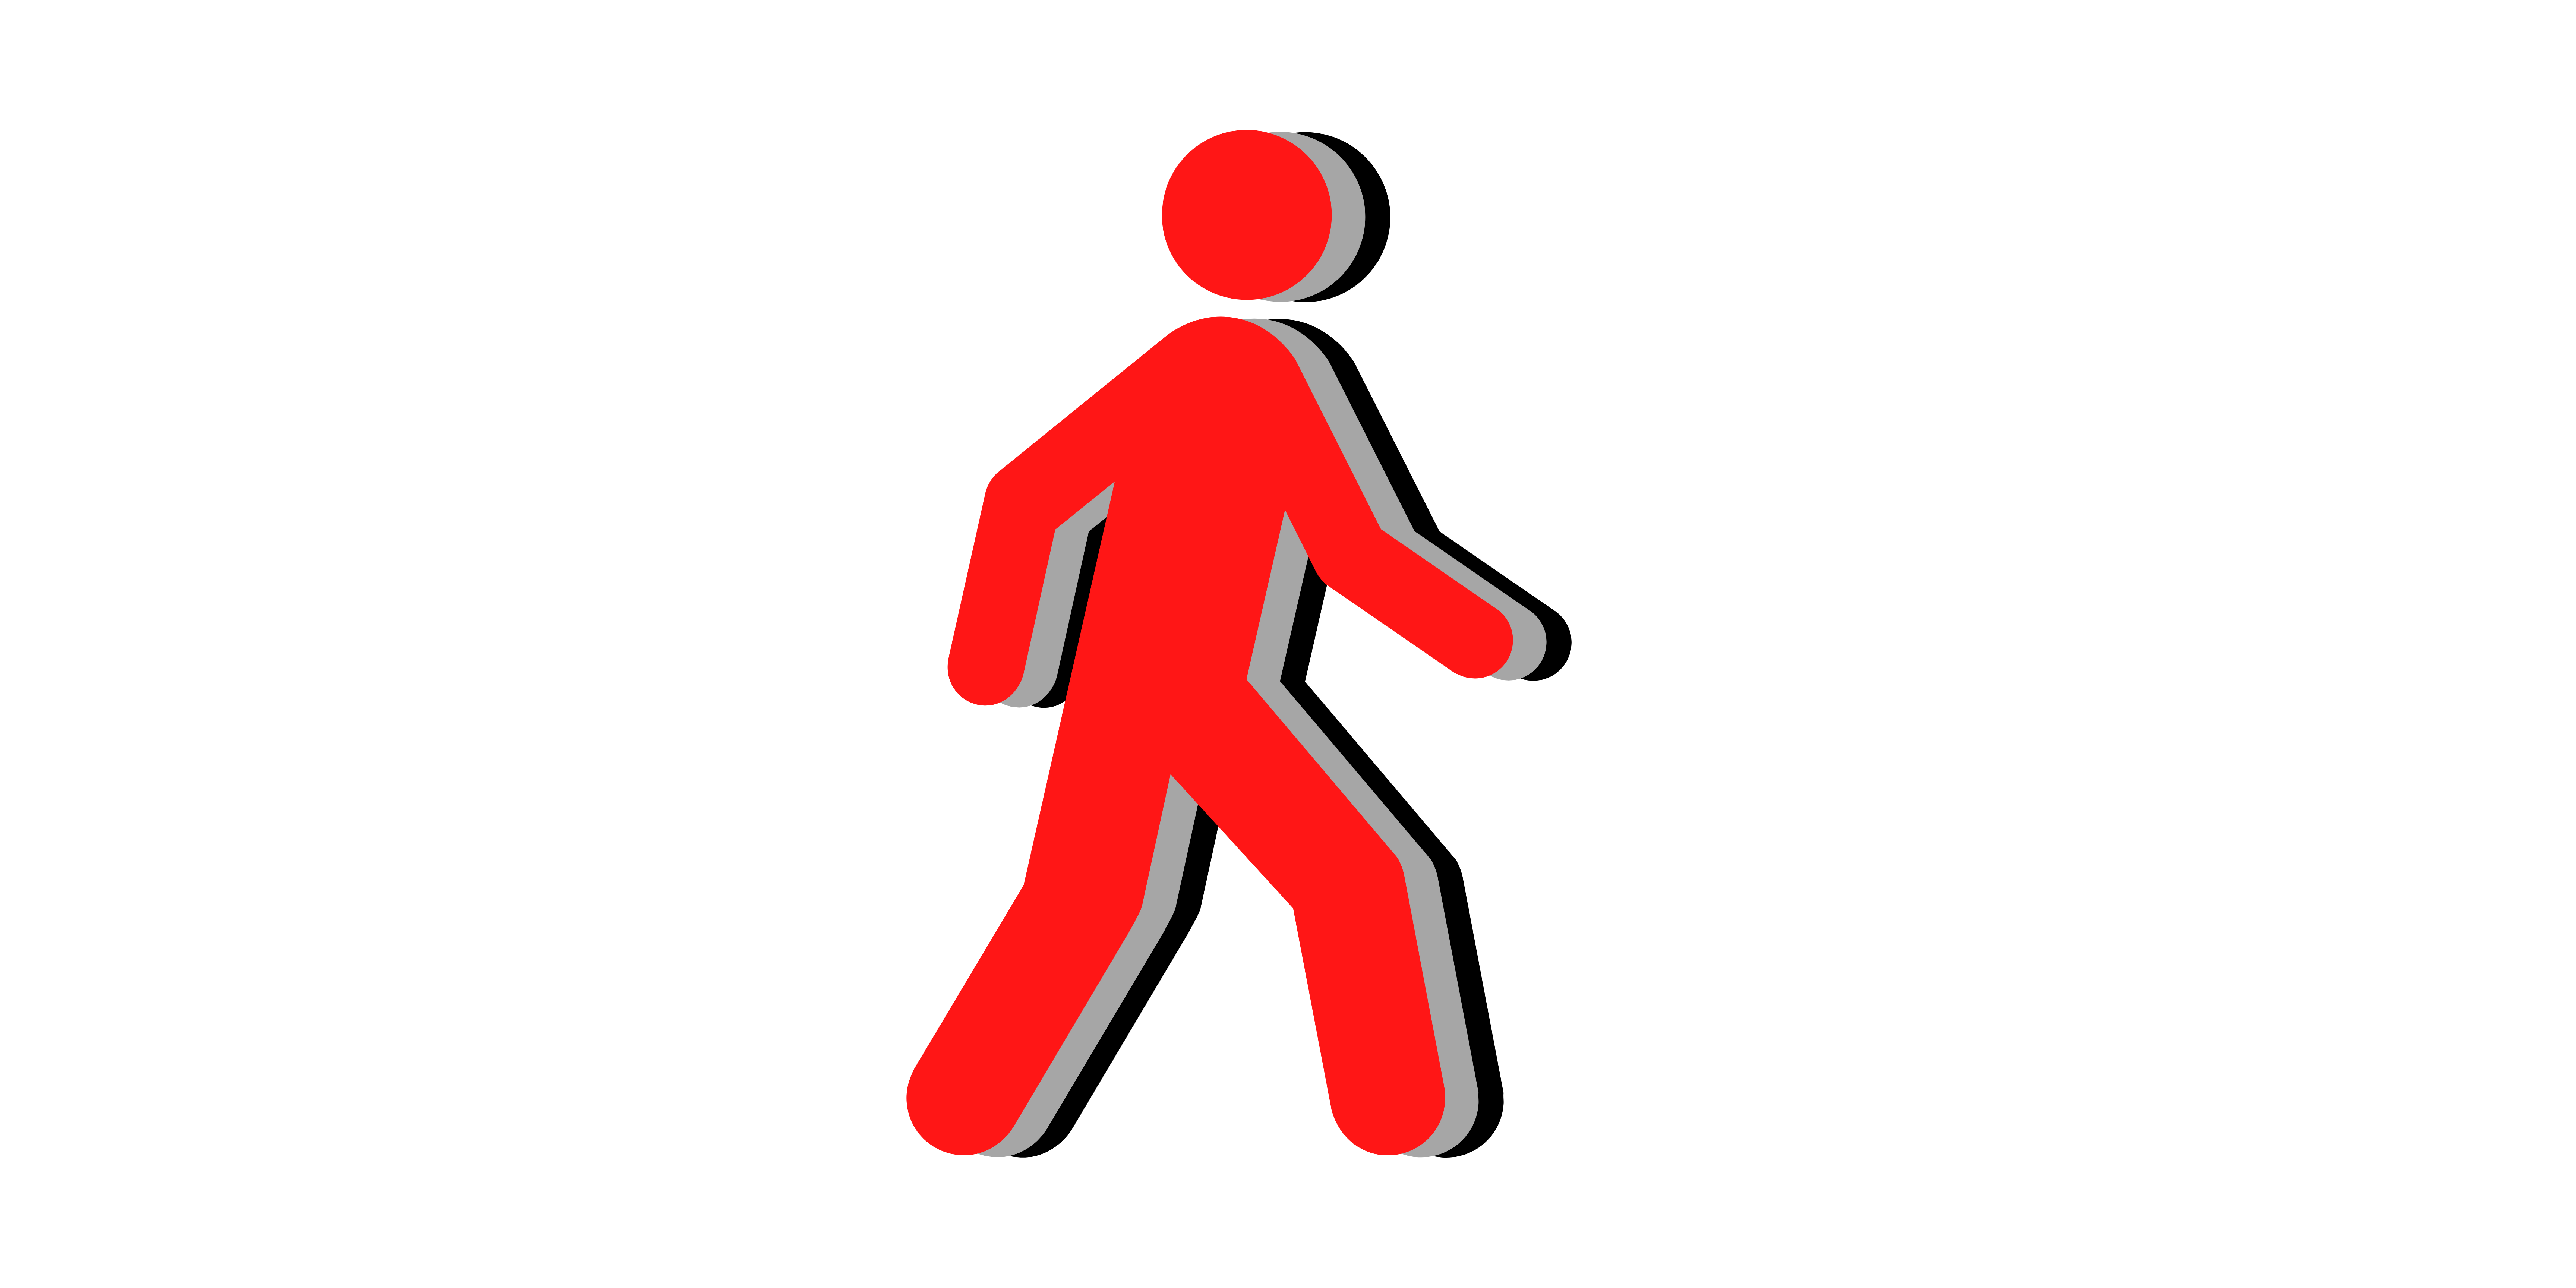 red person outline with a gray and black shadow